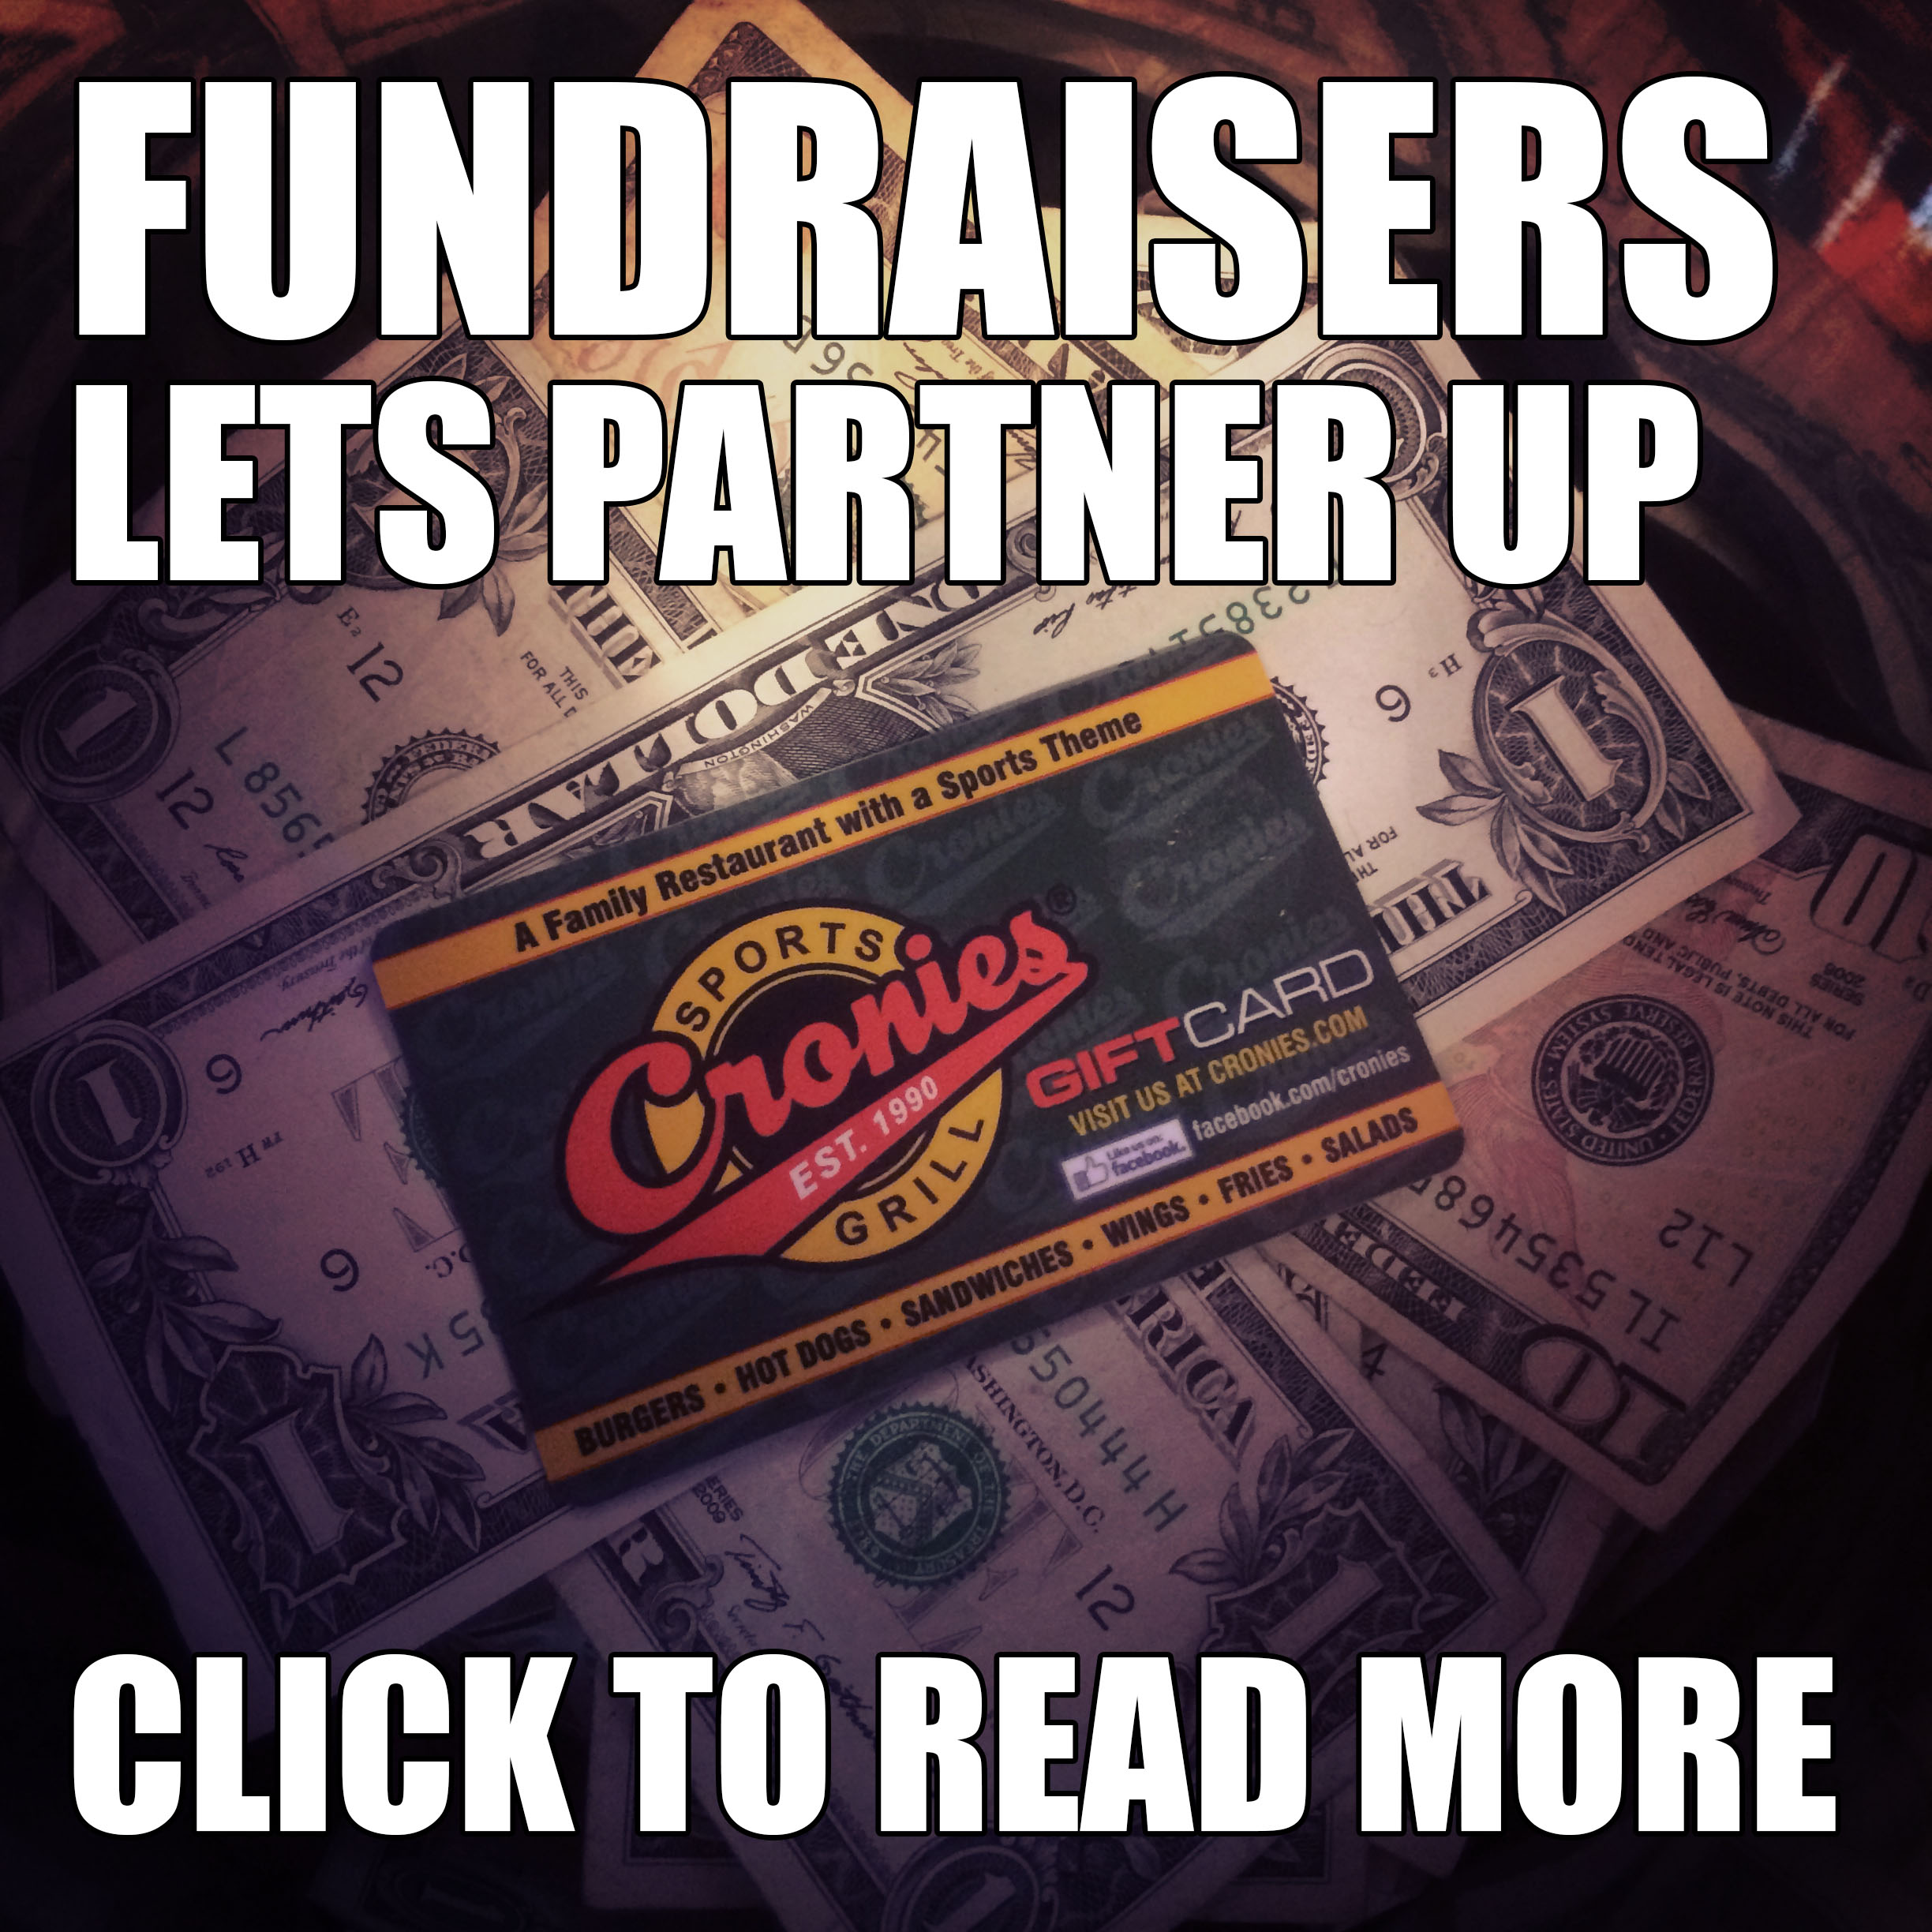 Fundraisers Lets Partner Up, Click to Read More